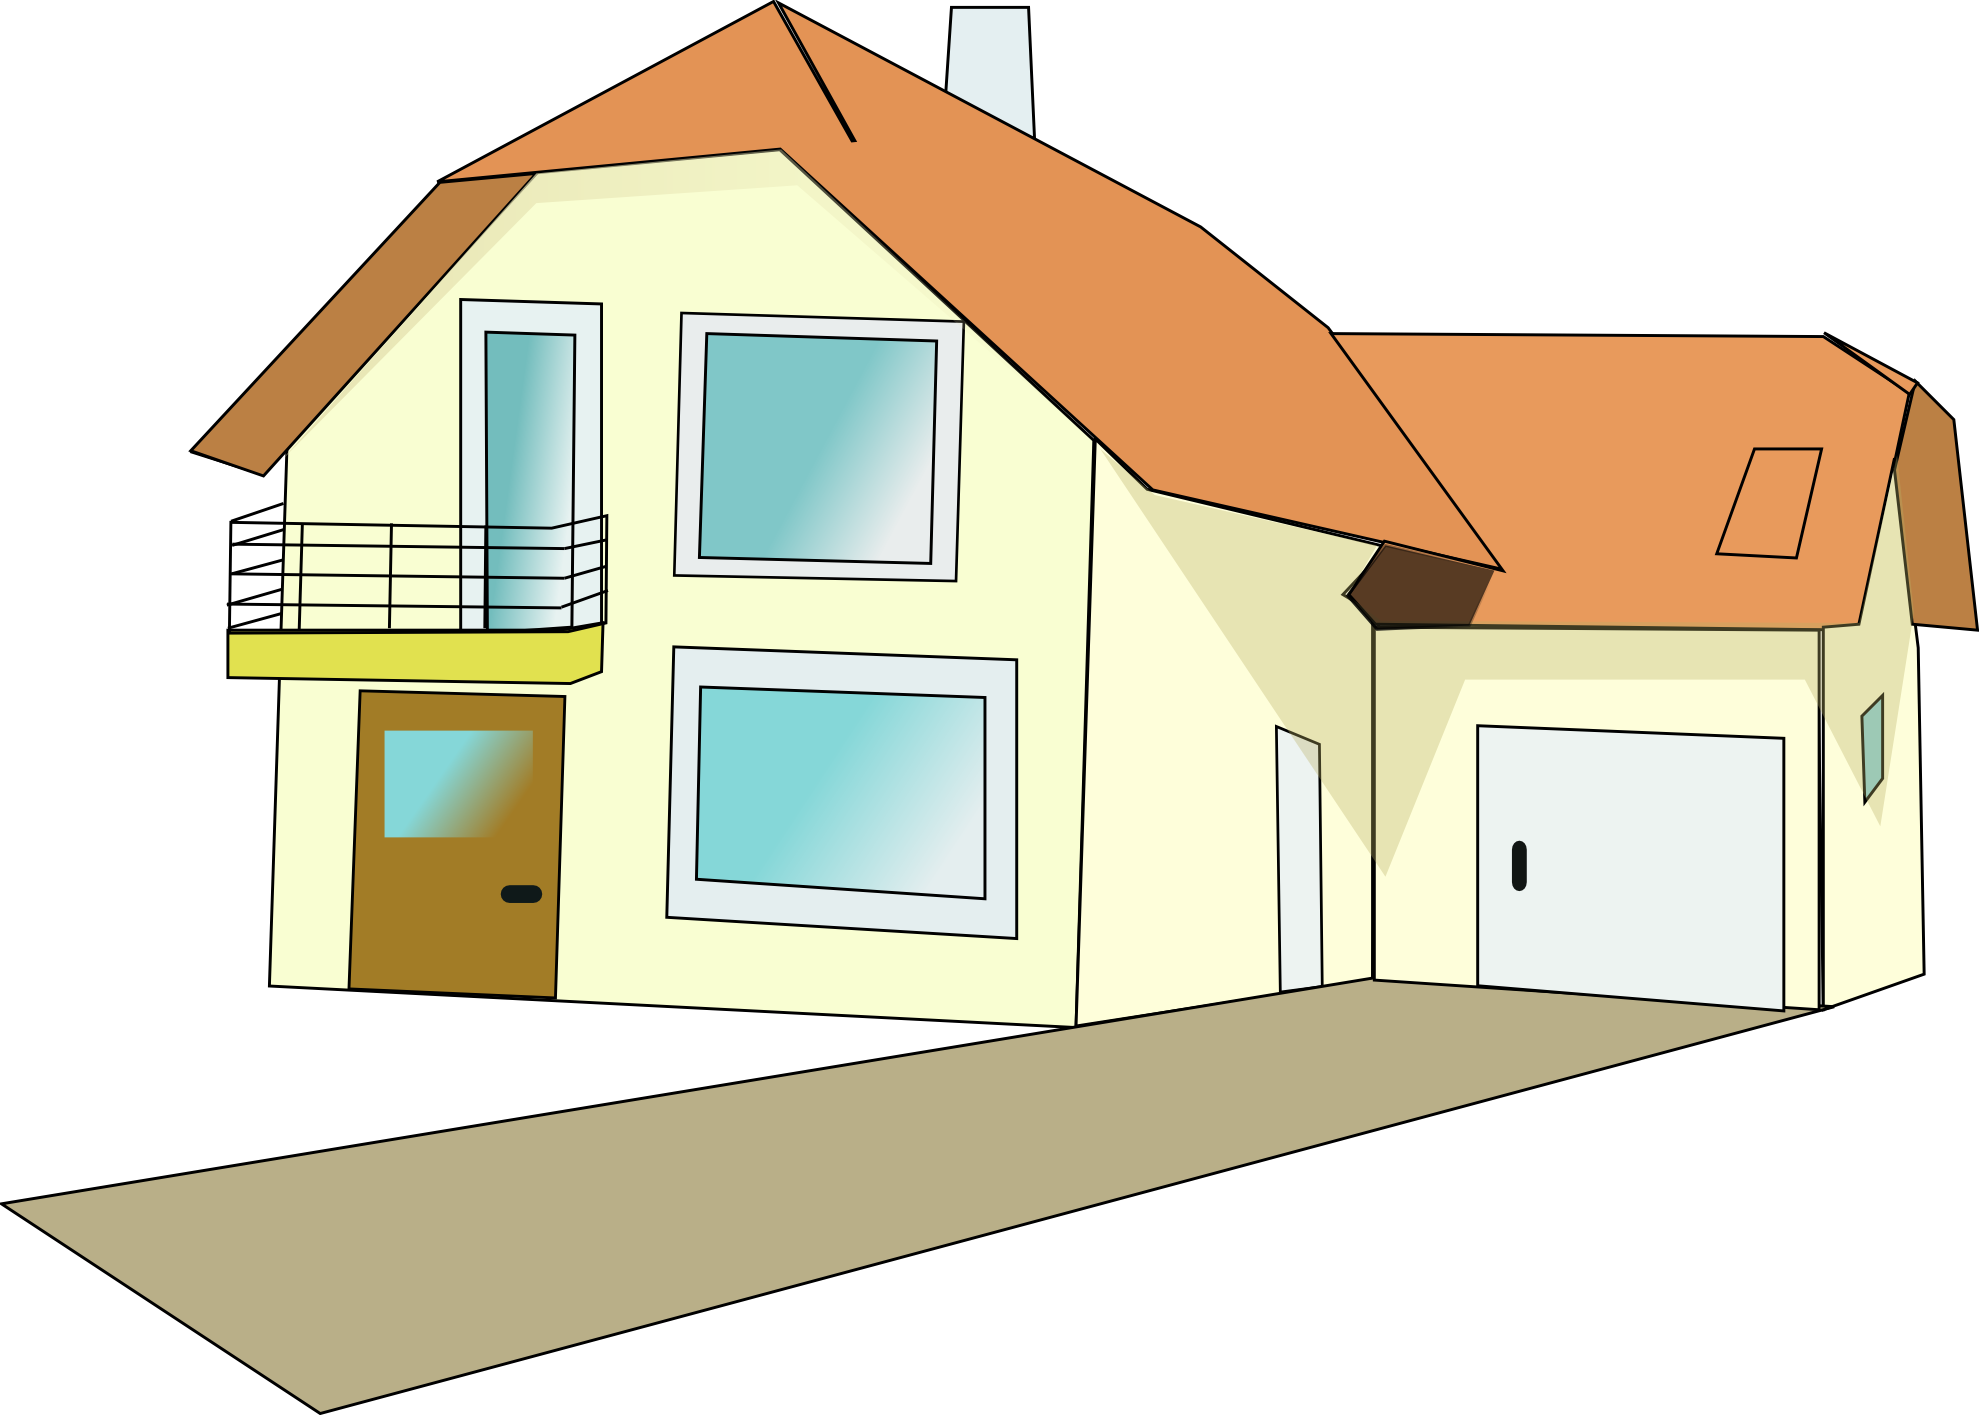 Floor clipart two story house. Clip art interior for